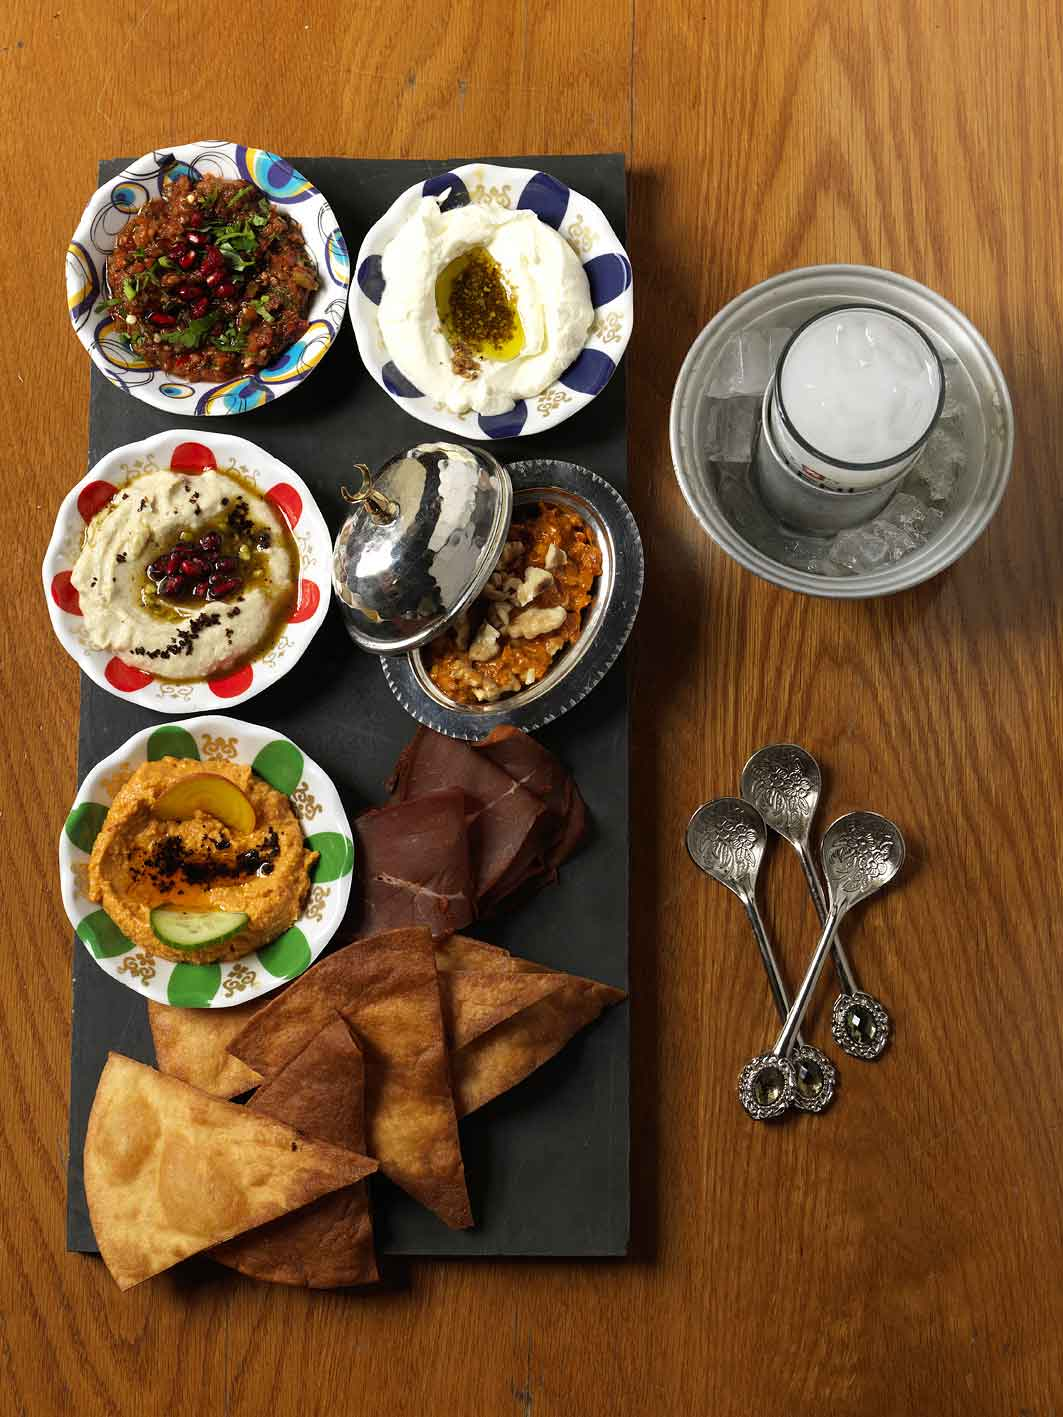 Efendy's meze platter reinvents classic turkish dishes.